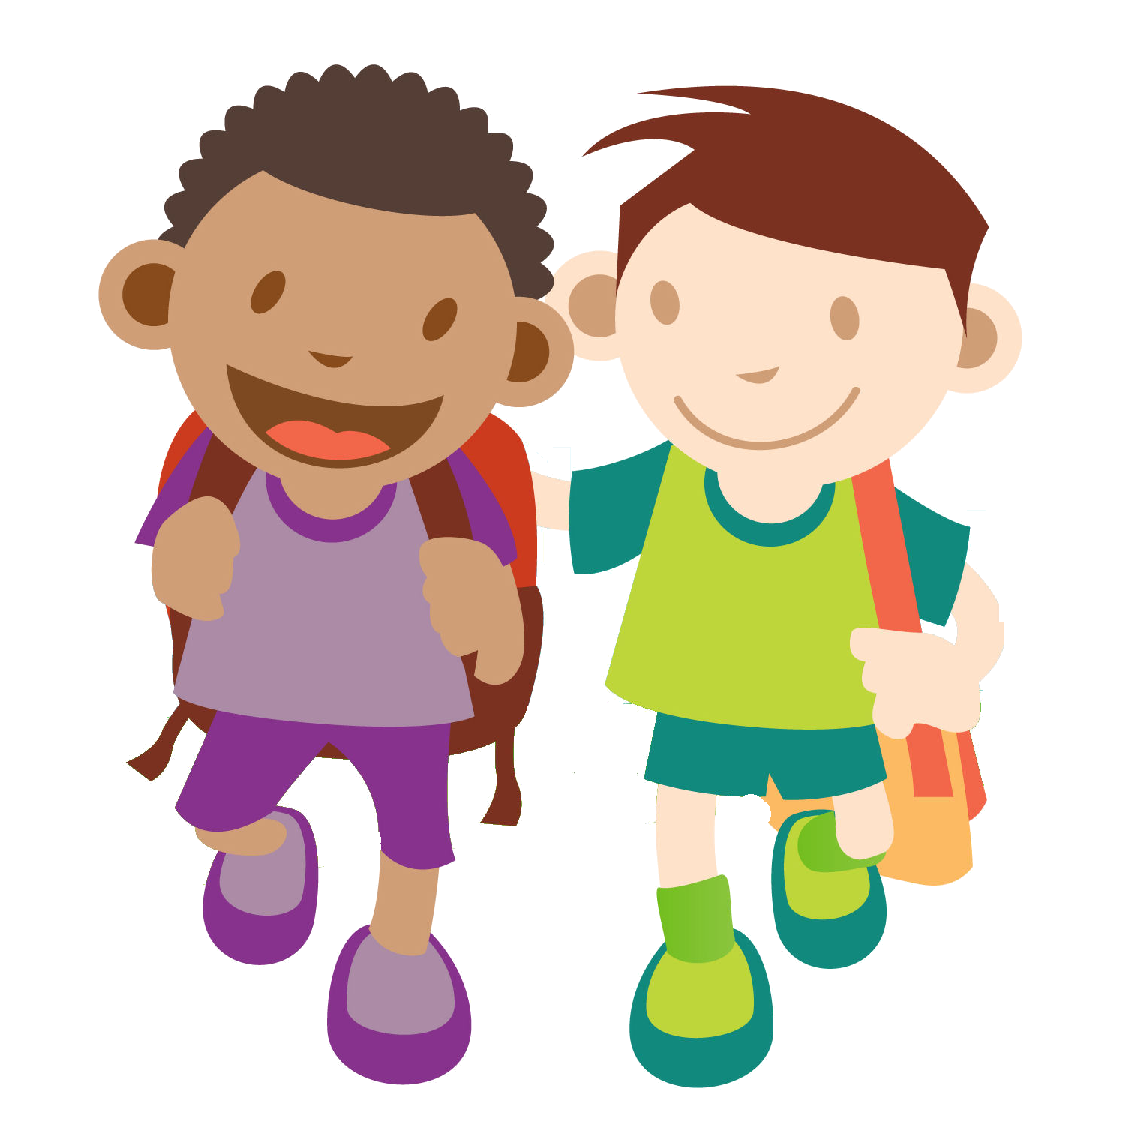 Kids Walking Clip Art - Cliparts.co